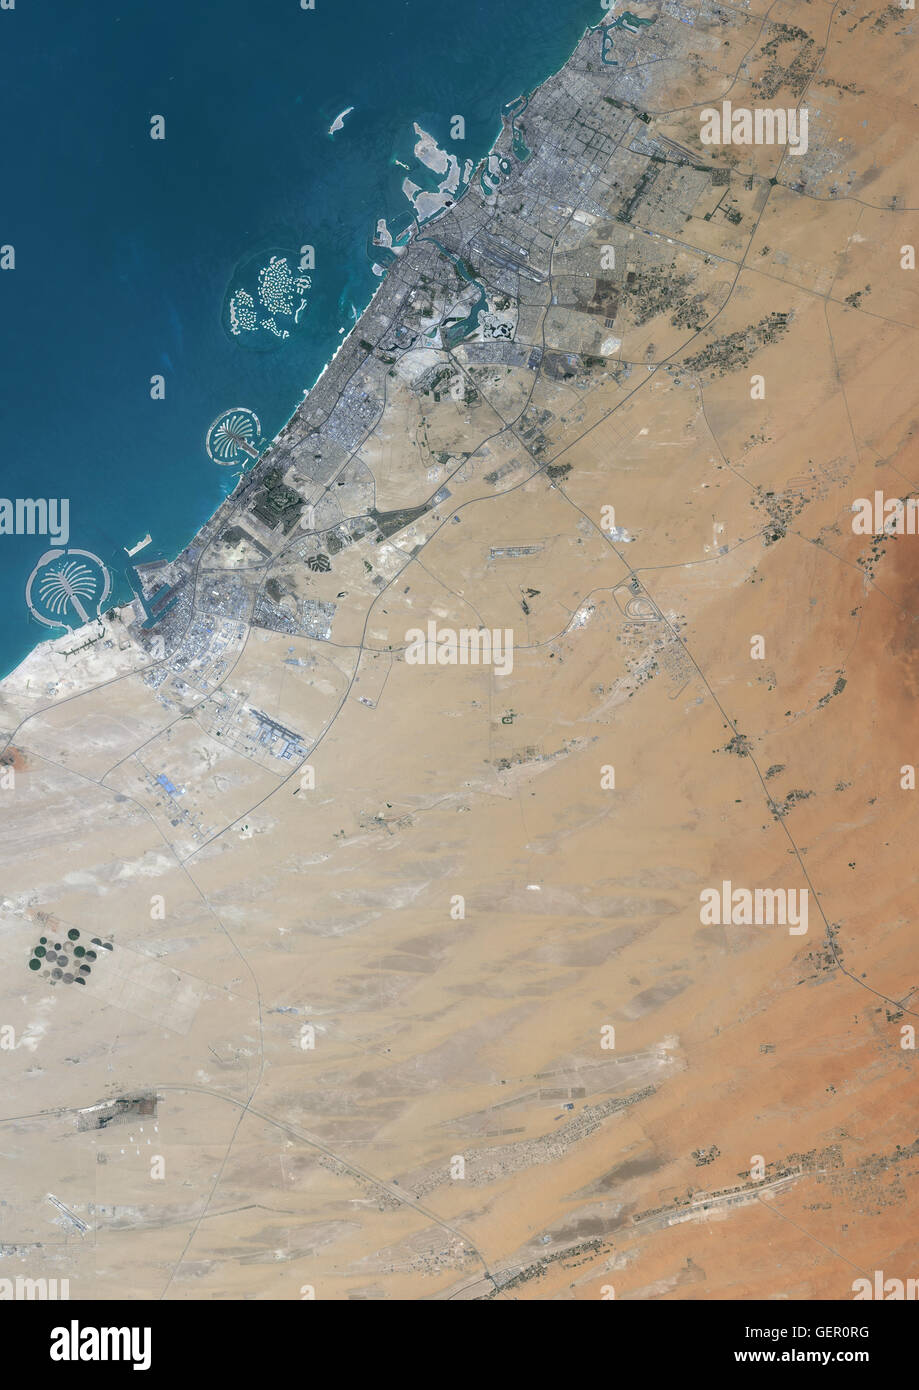 Satellite view of Dubai, United Arab Emirates. The image shows Palm Jebel Ali, Palm Jumeirah and The World Islands. - Stock Image